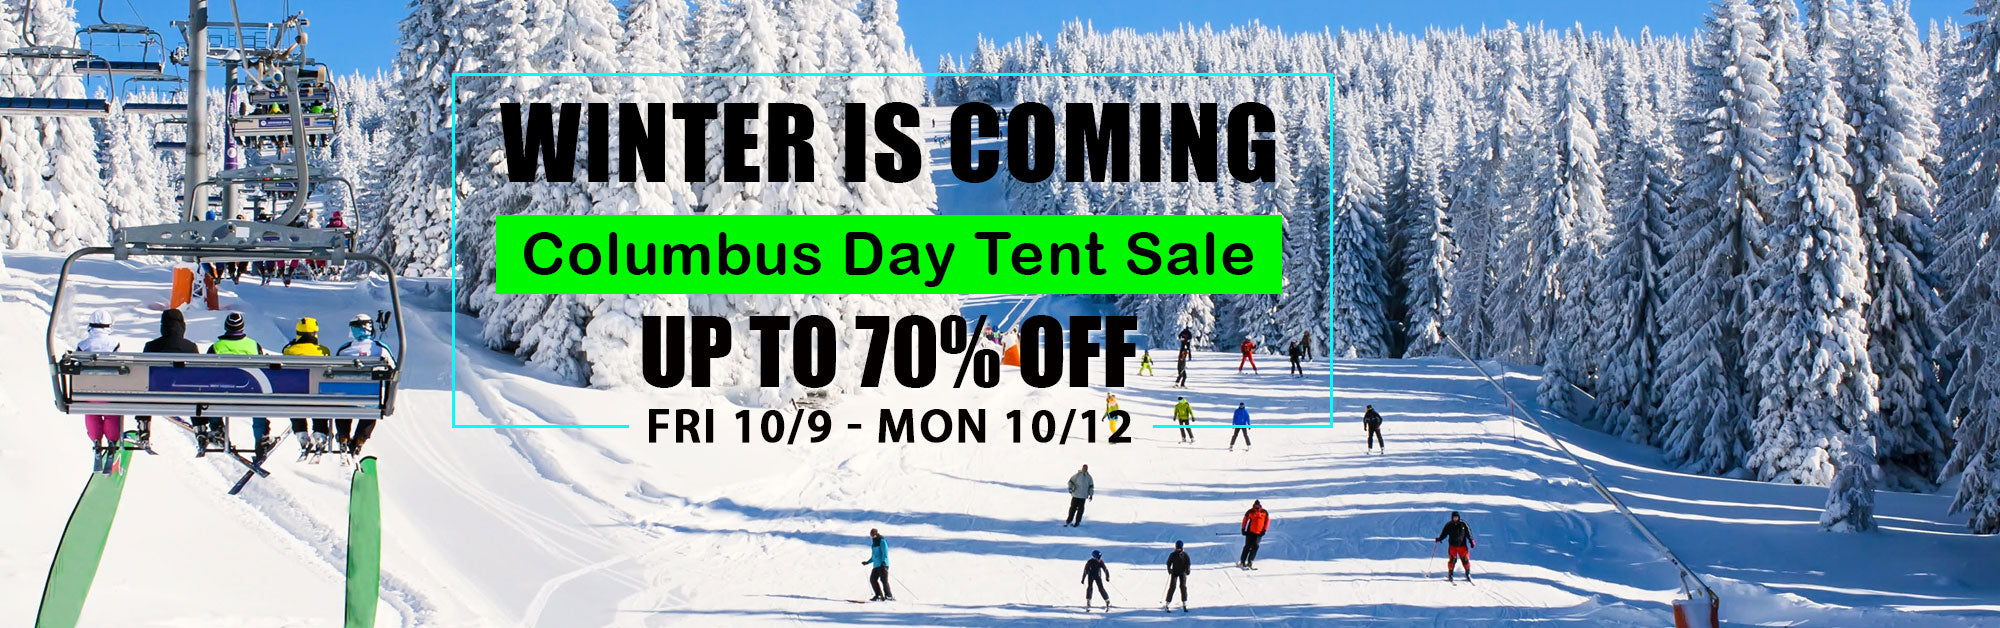 Columbus Day ski tent sale at Proctor ski in Nashua NH